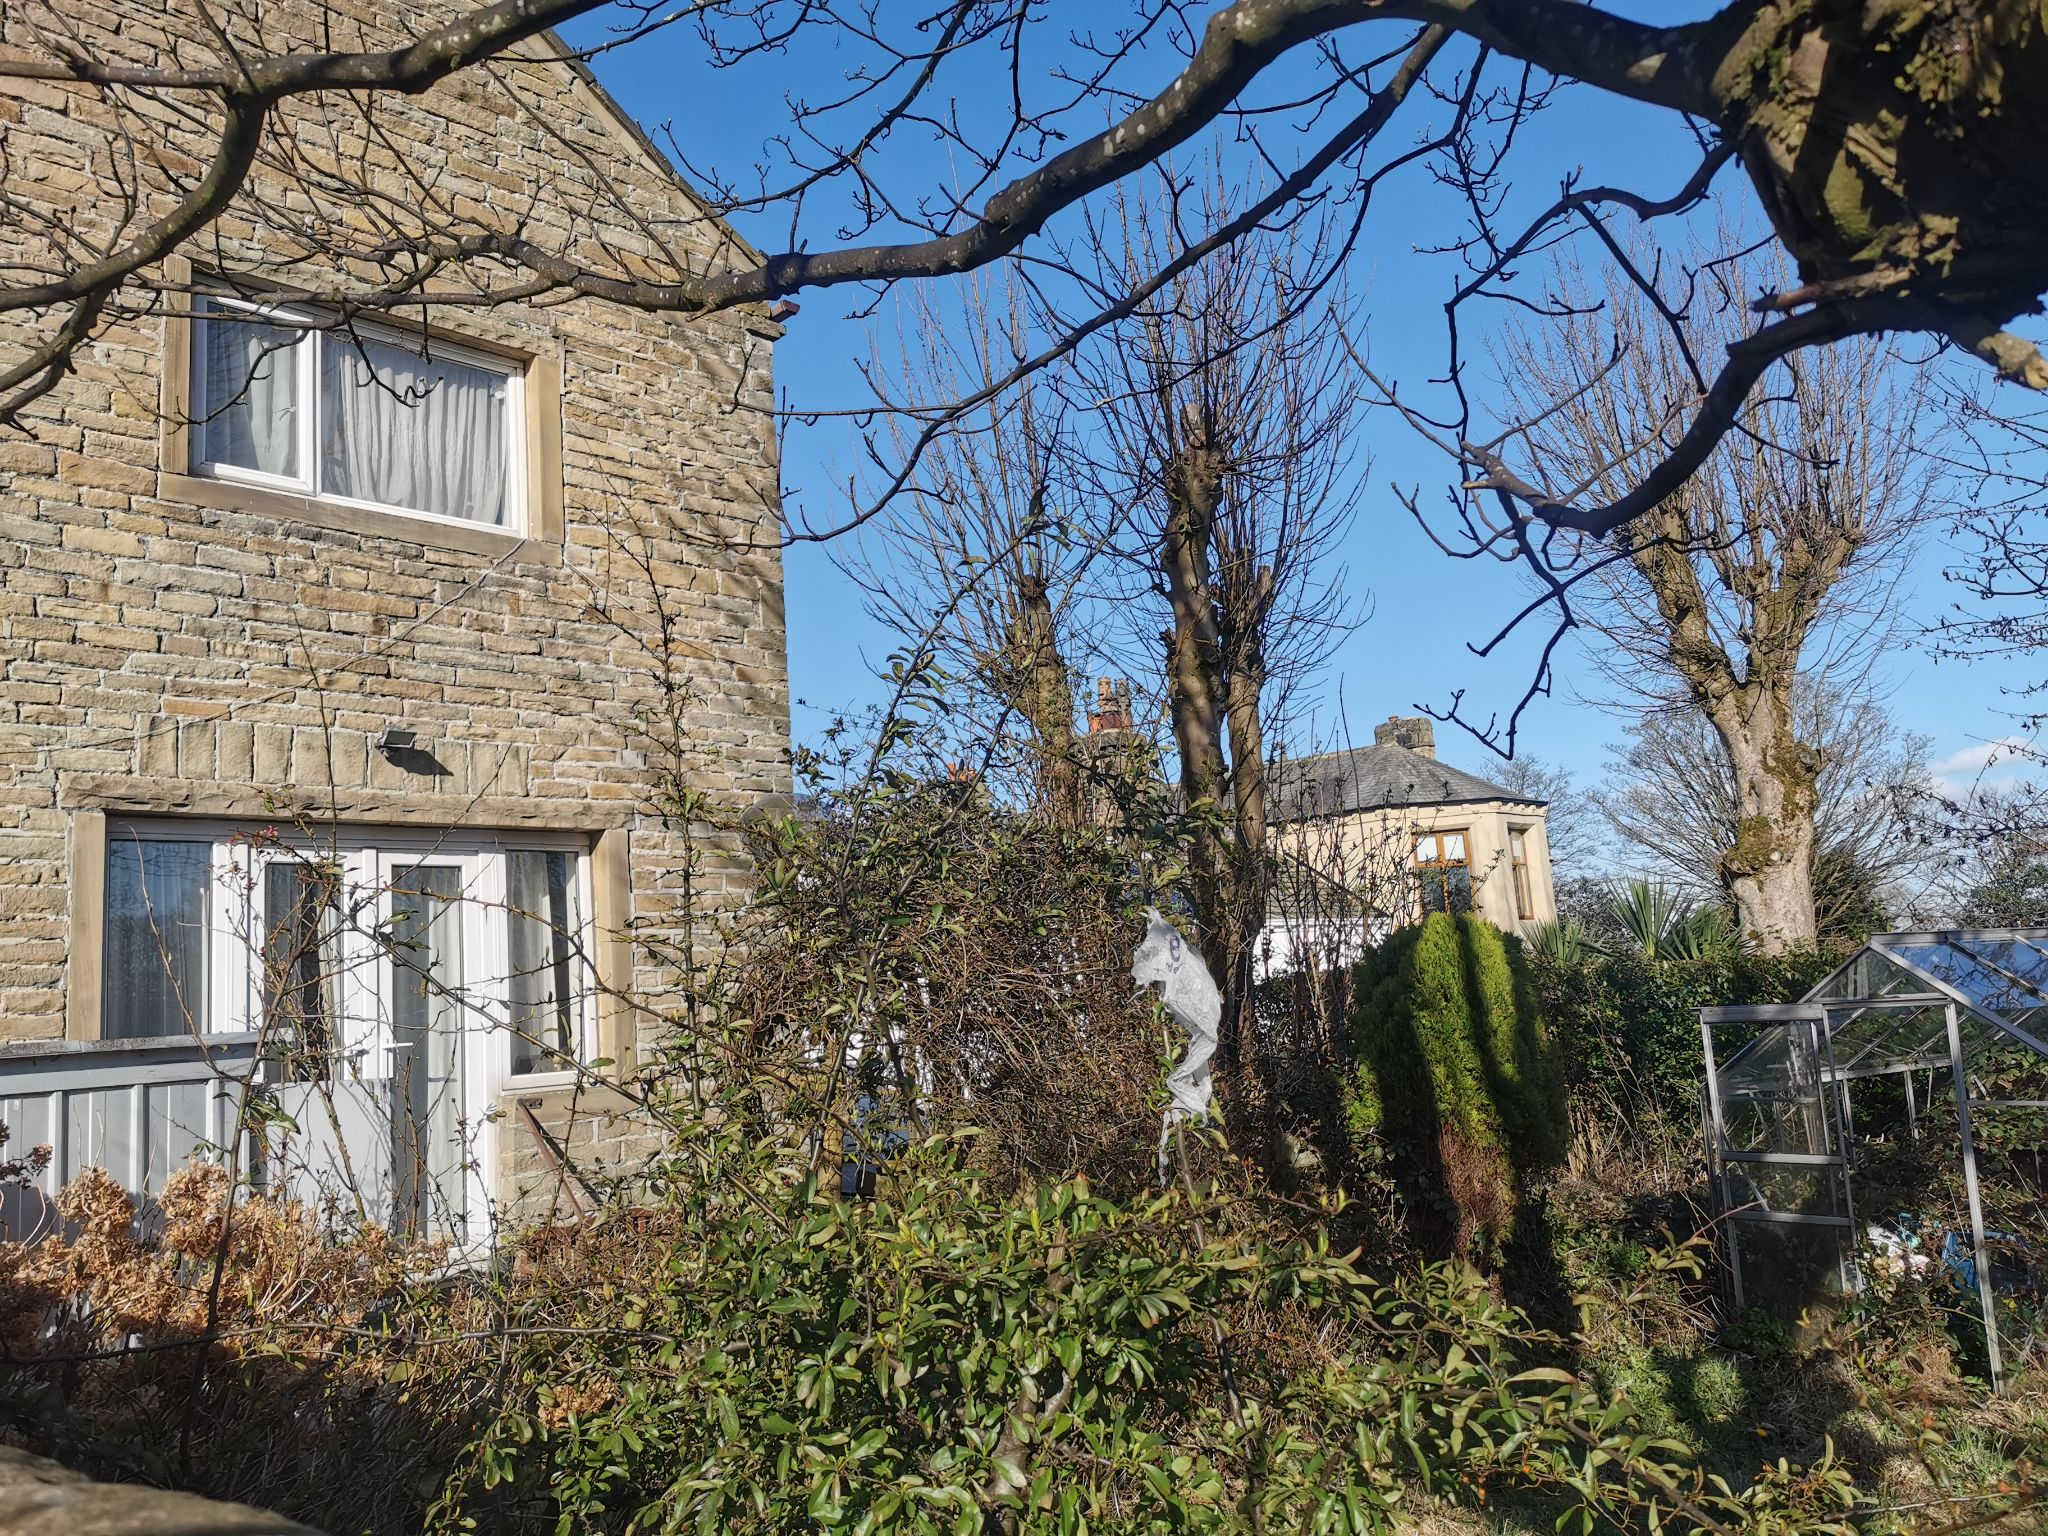 3 bedroom detached house For Sale in Bradford - Photograph 3.